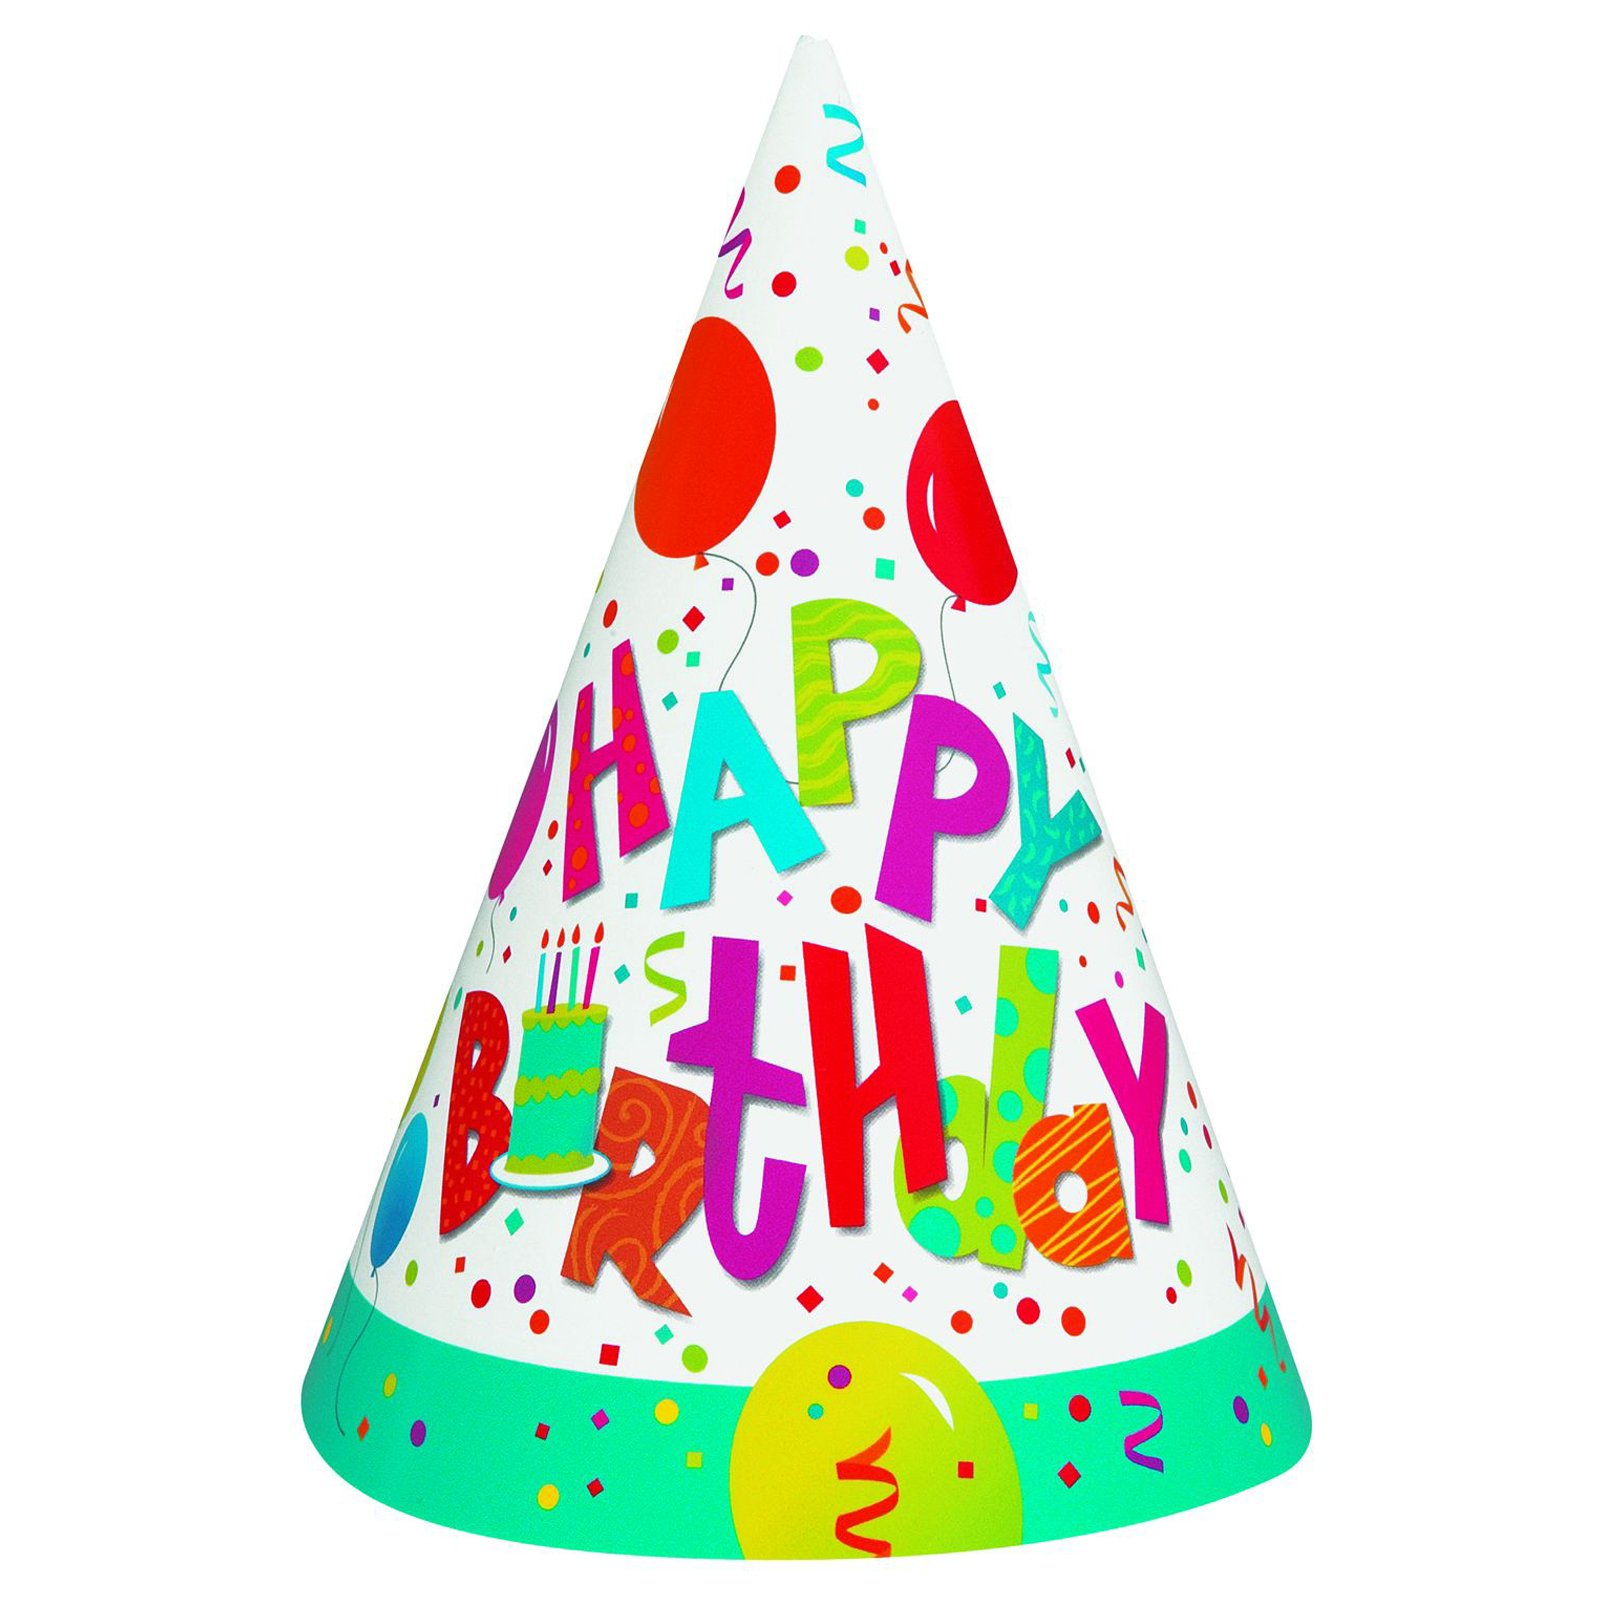 birthday hat clip art clear background - Birthday Hat PNG